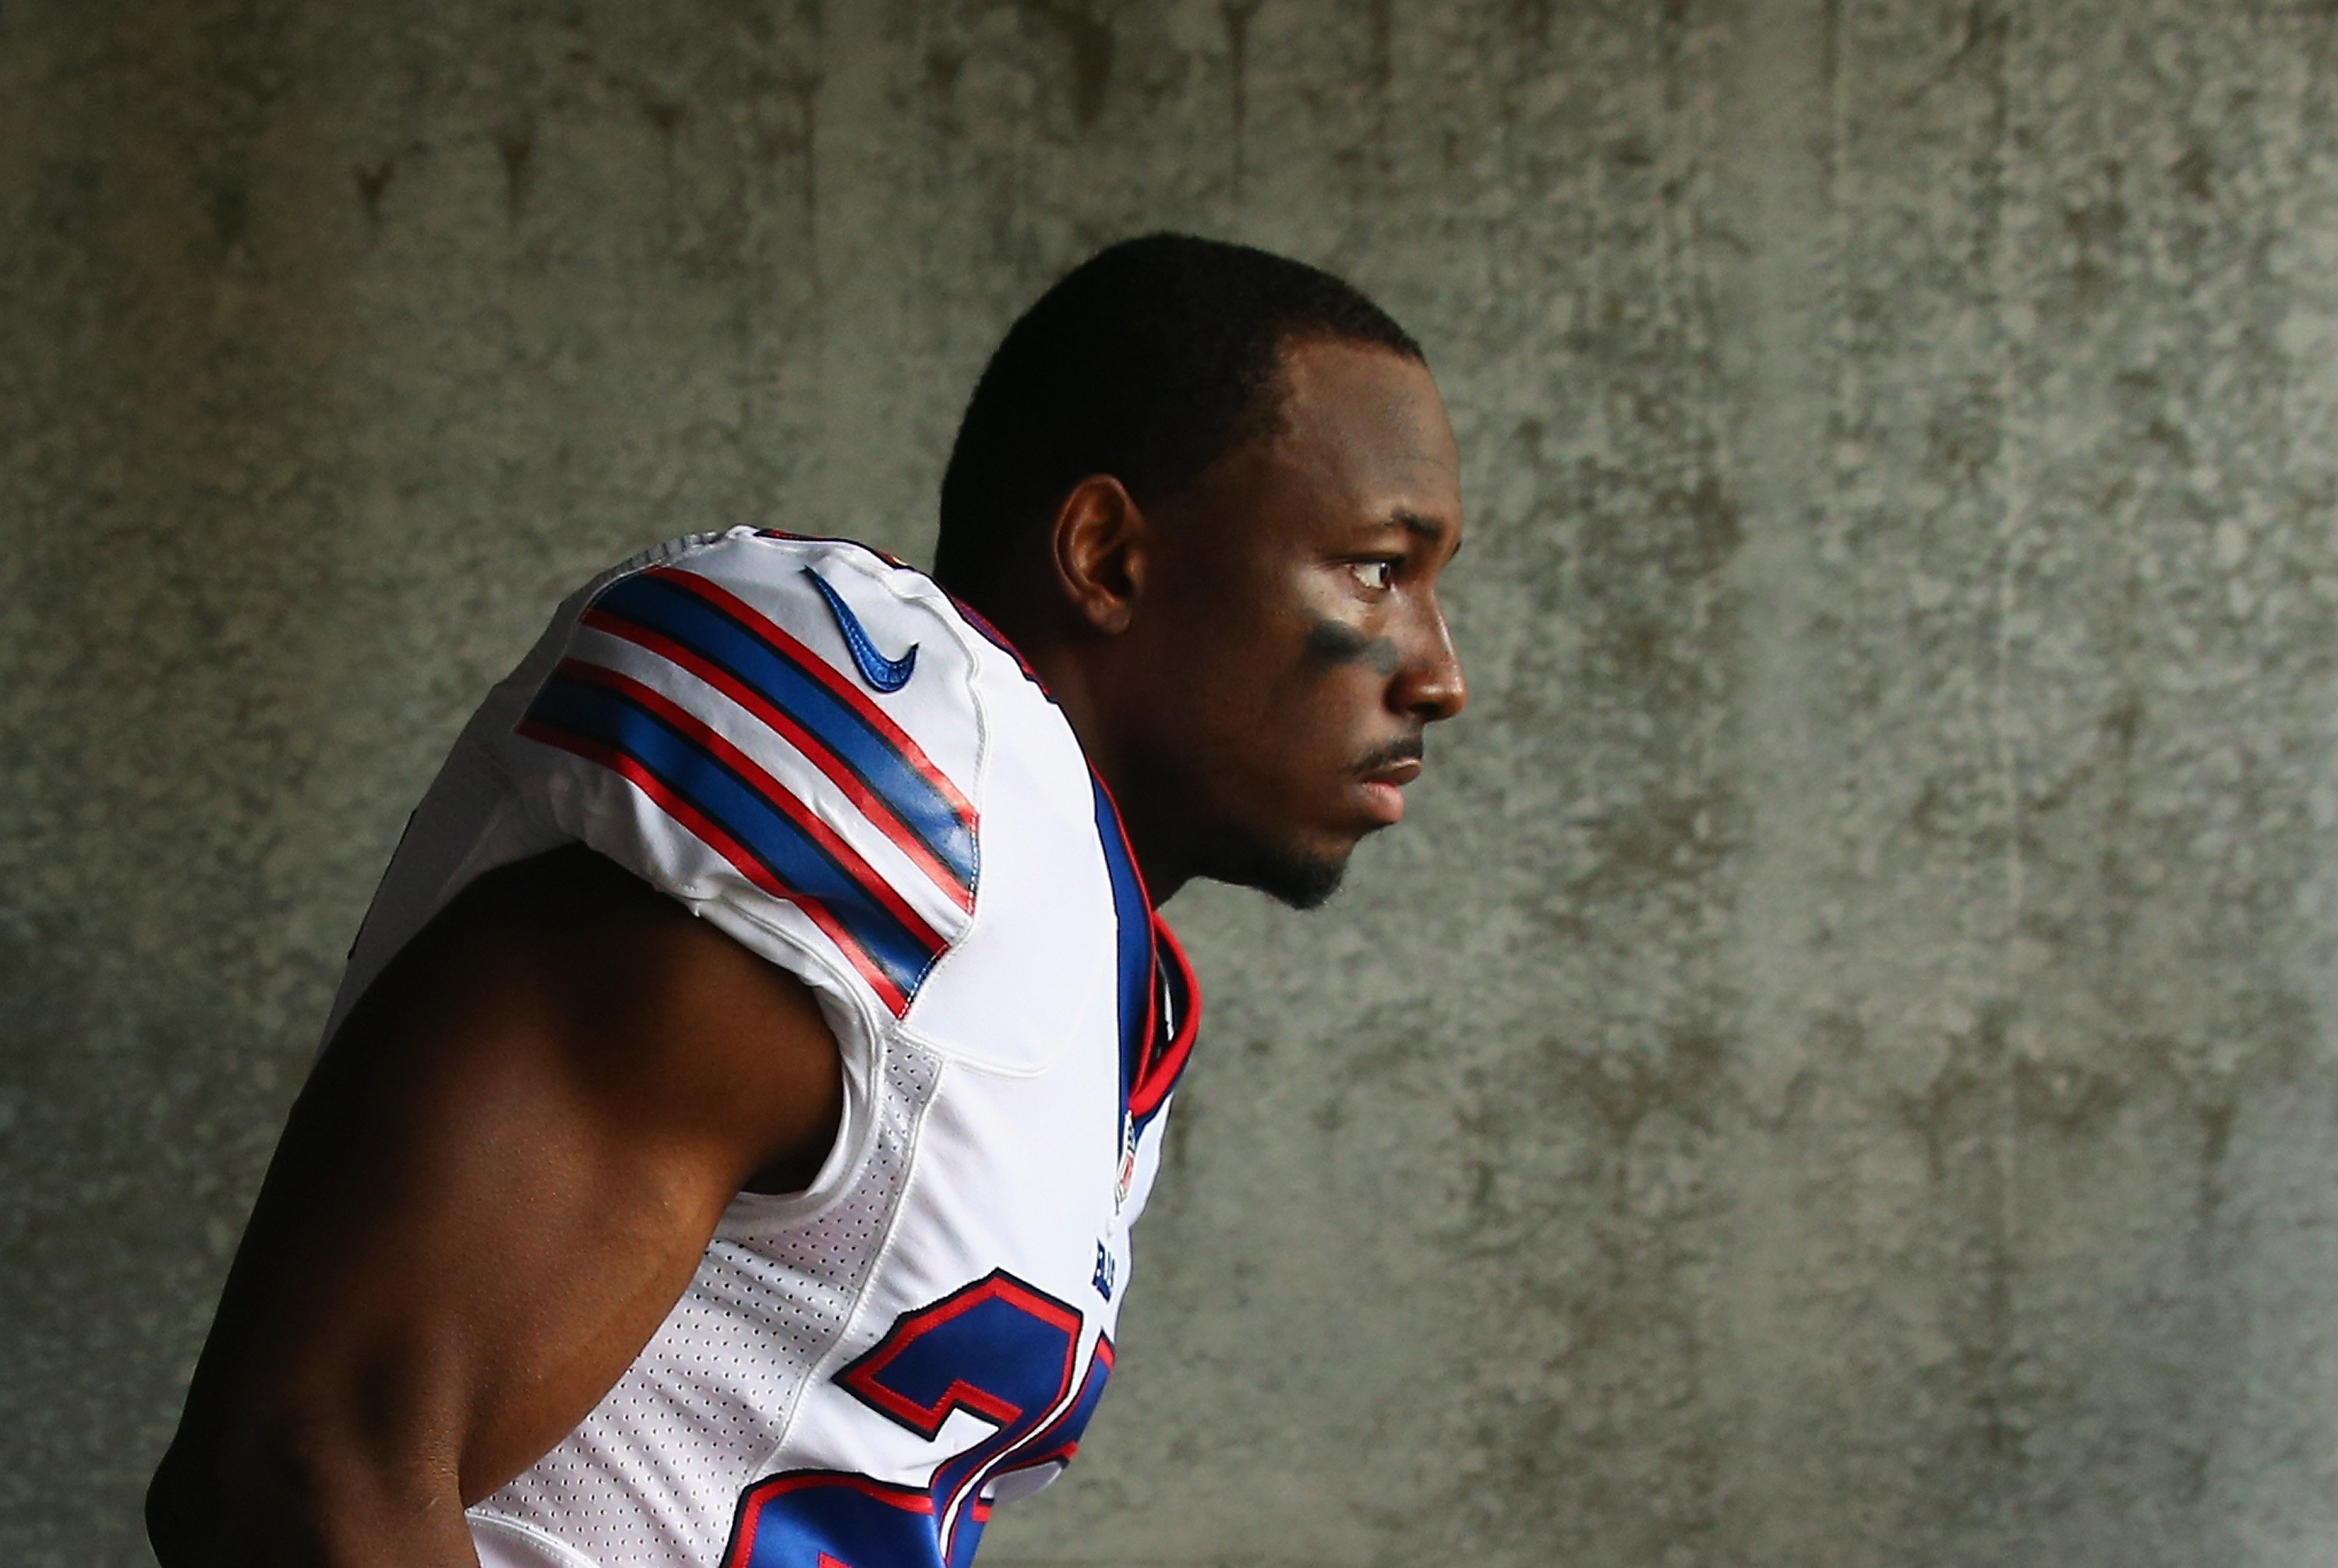 Police in this Atlanta suburb are investigating a home invasion at a house belonging to NFL superstar and Buffalo Bills running back LeSean McCoy in which his former girlfriend was violently assaulted and hospitalized and another woman was injured.